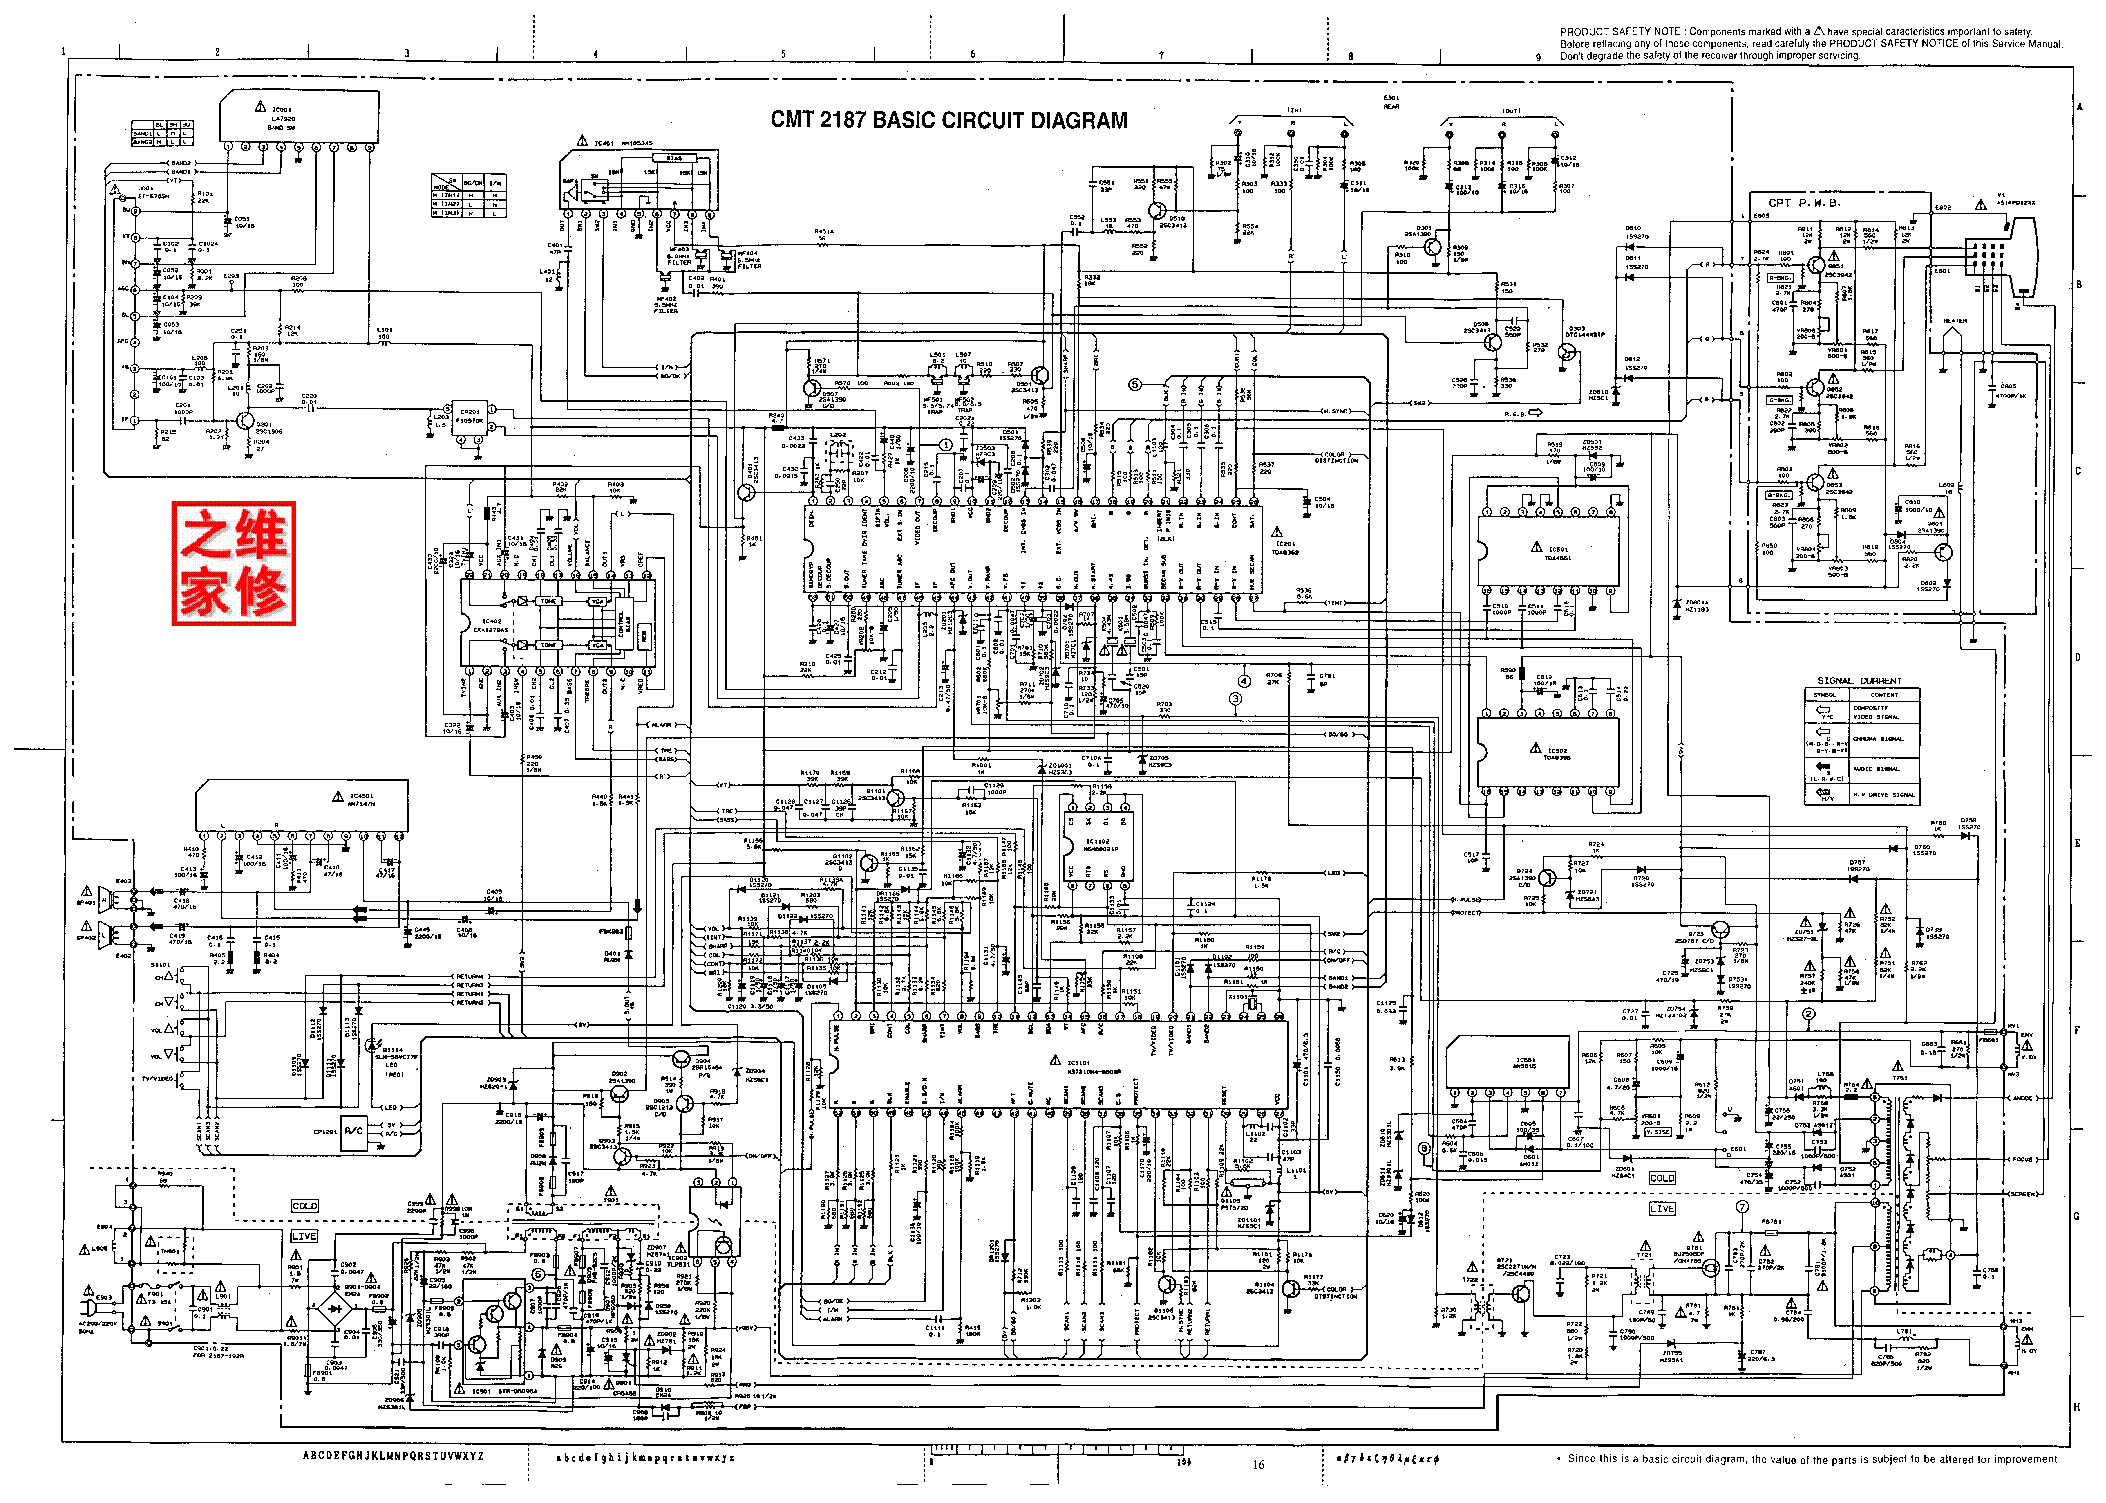 Hitachi Washing Machine Wiring Diagram Control Kenstar Cmt2187 Basic Circuit 1 Service Manual